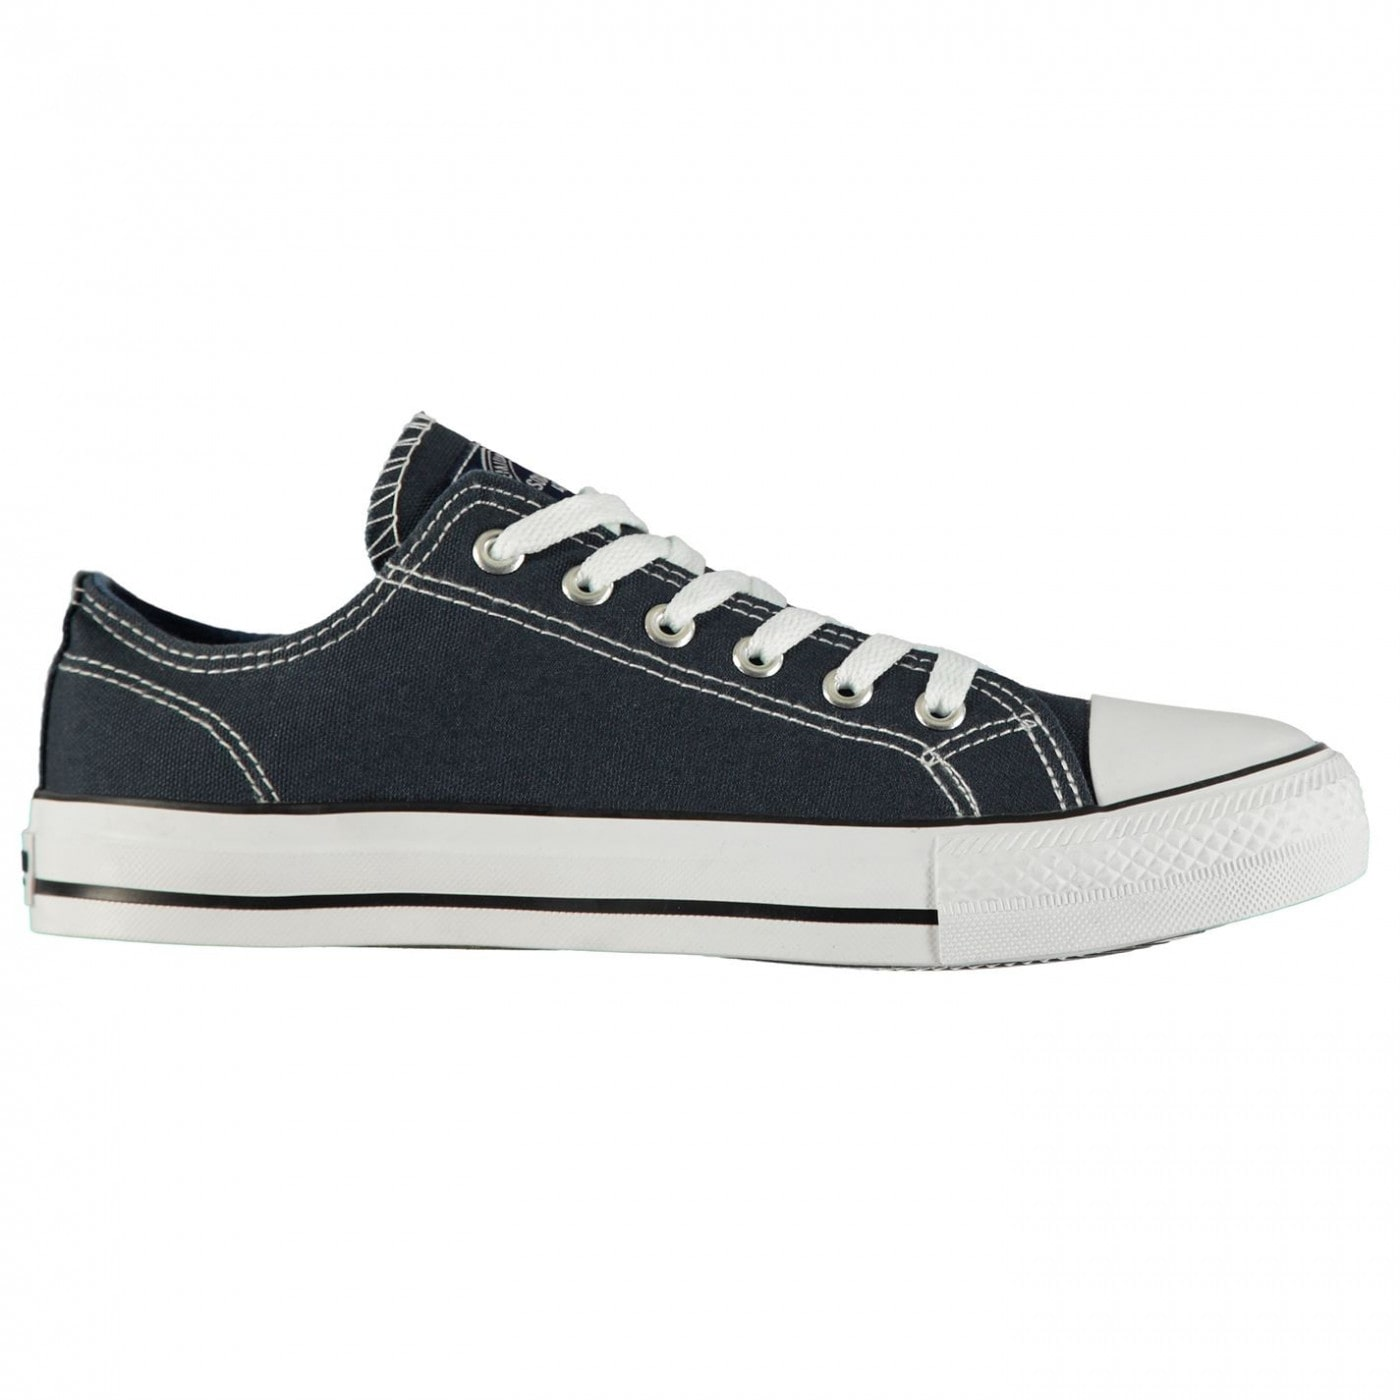 Men's Trainers SoulCal Basic